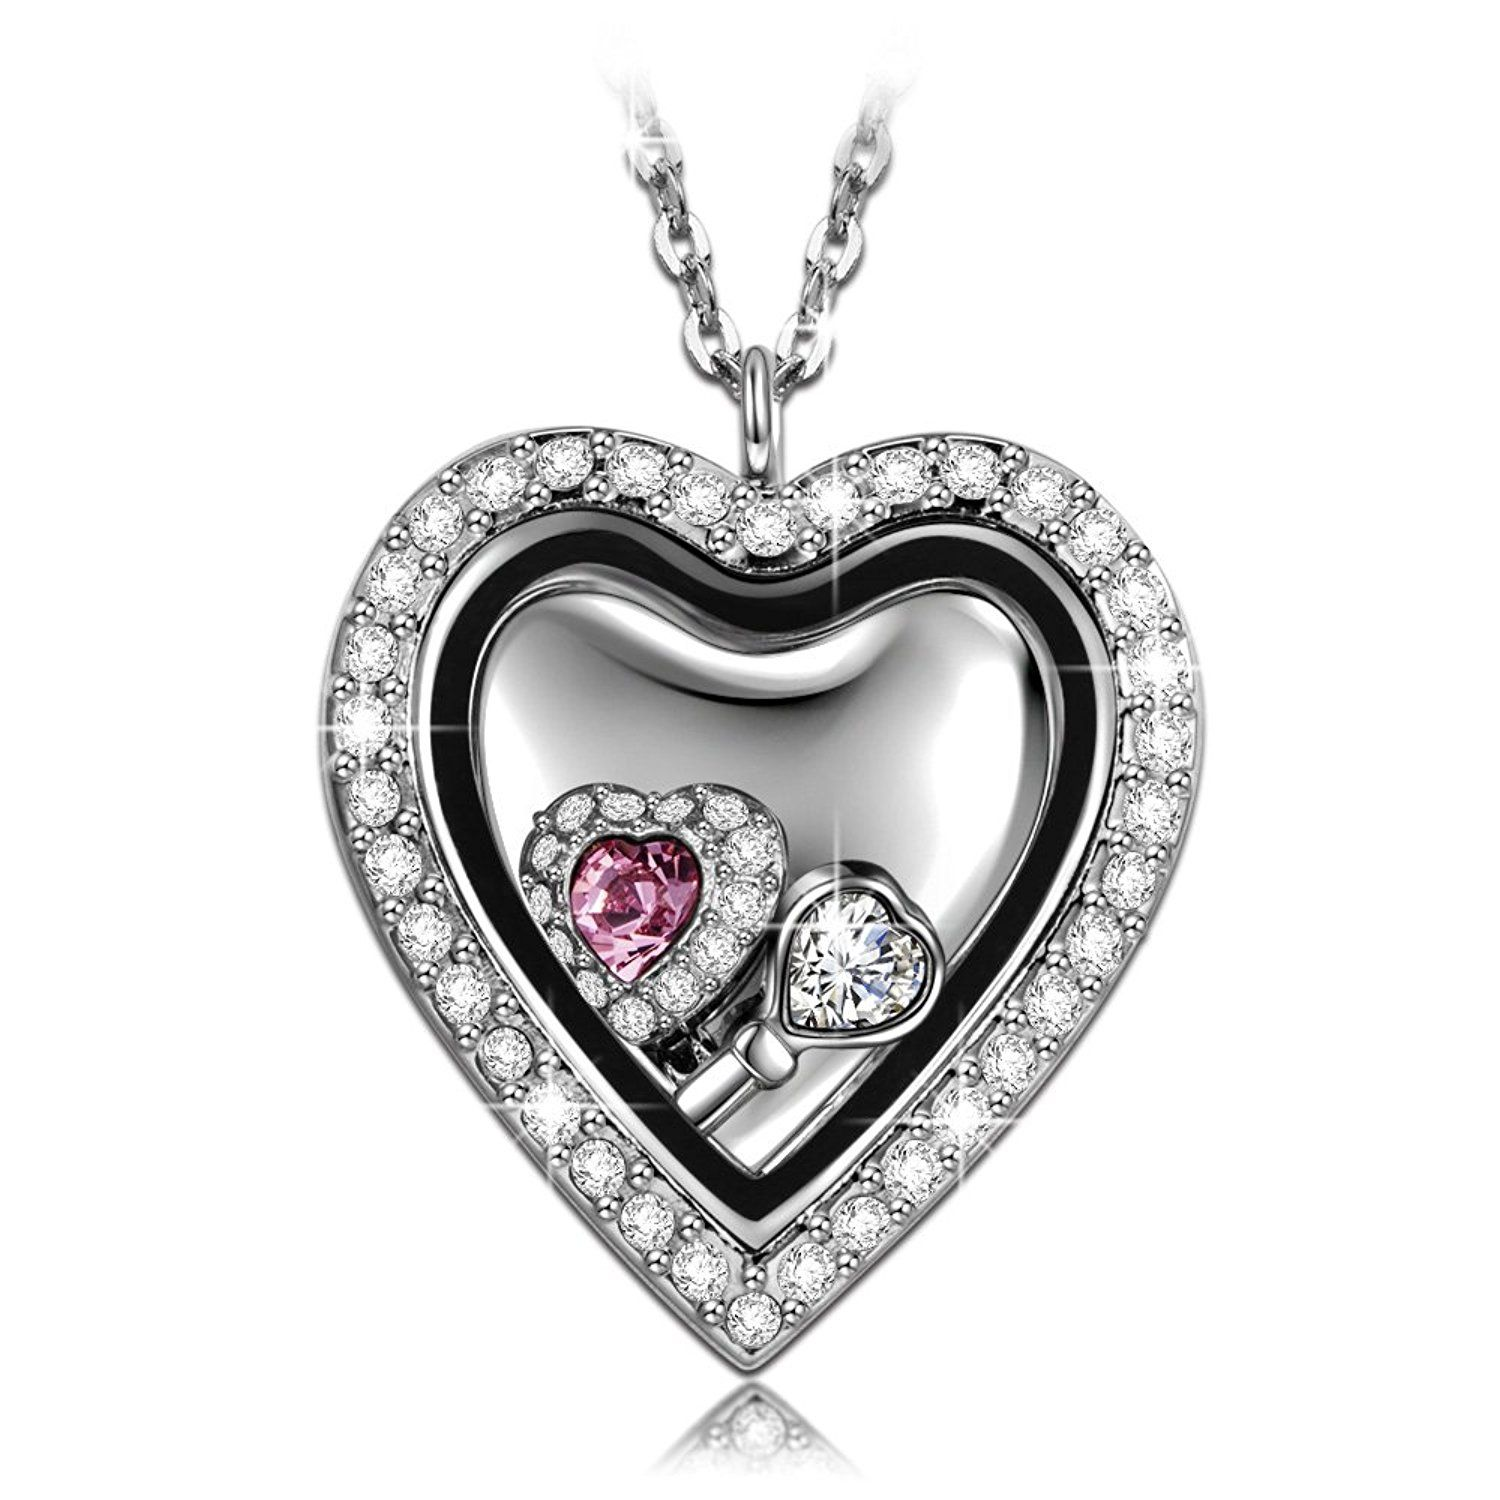 Ladycolour heart locket pendant engraved uloveu necklace made with